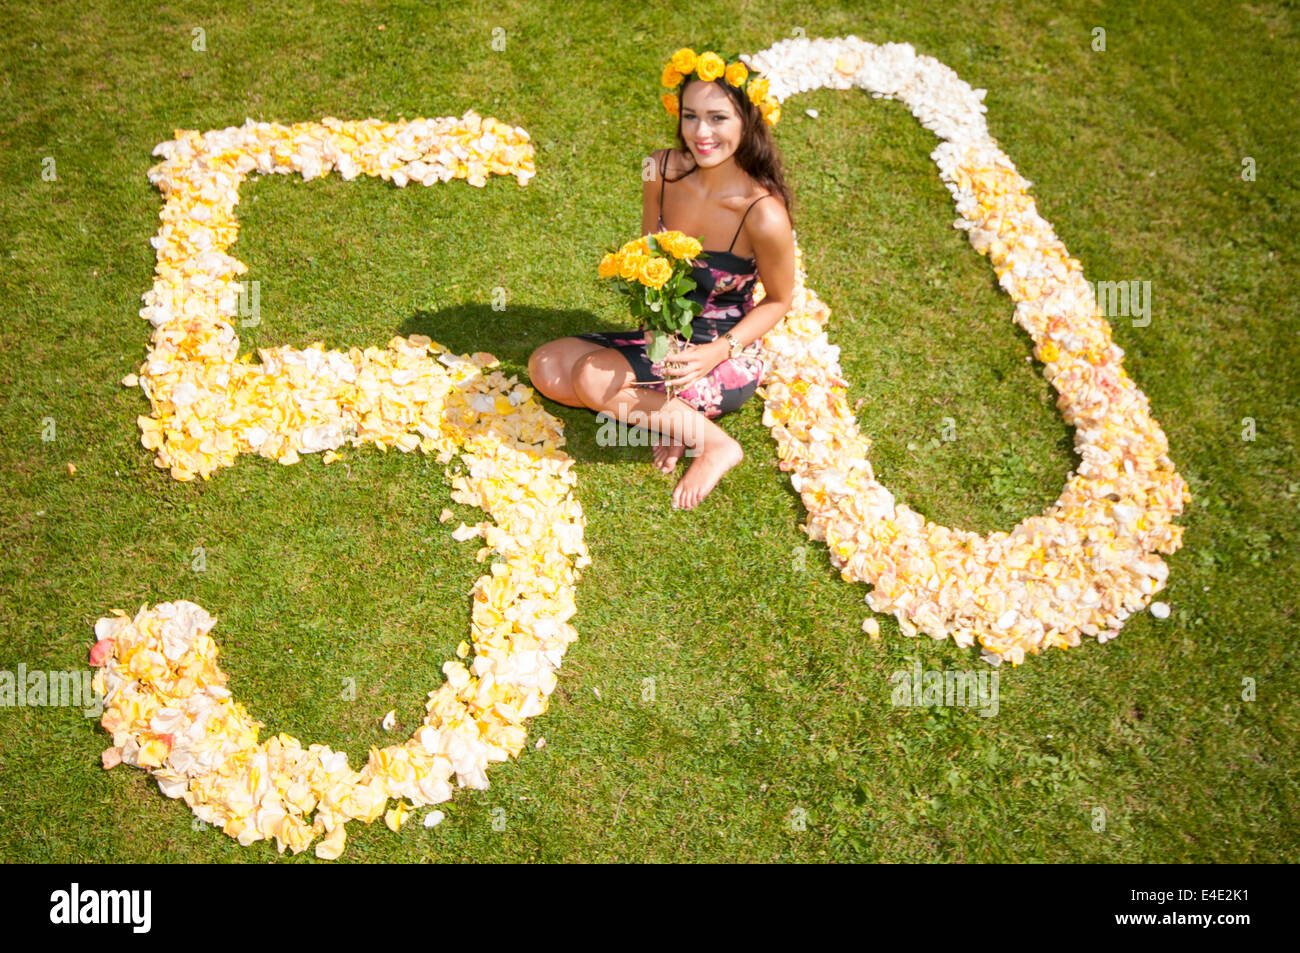 Belfast, Northern Ireland. 9 Jul 2014 - Rebekah Shirley, Miss Northern Ireland 2014, launches Rose Week. This year - Stock Image